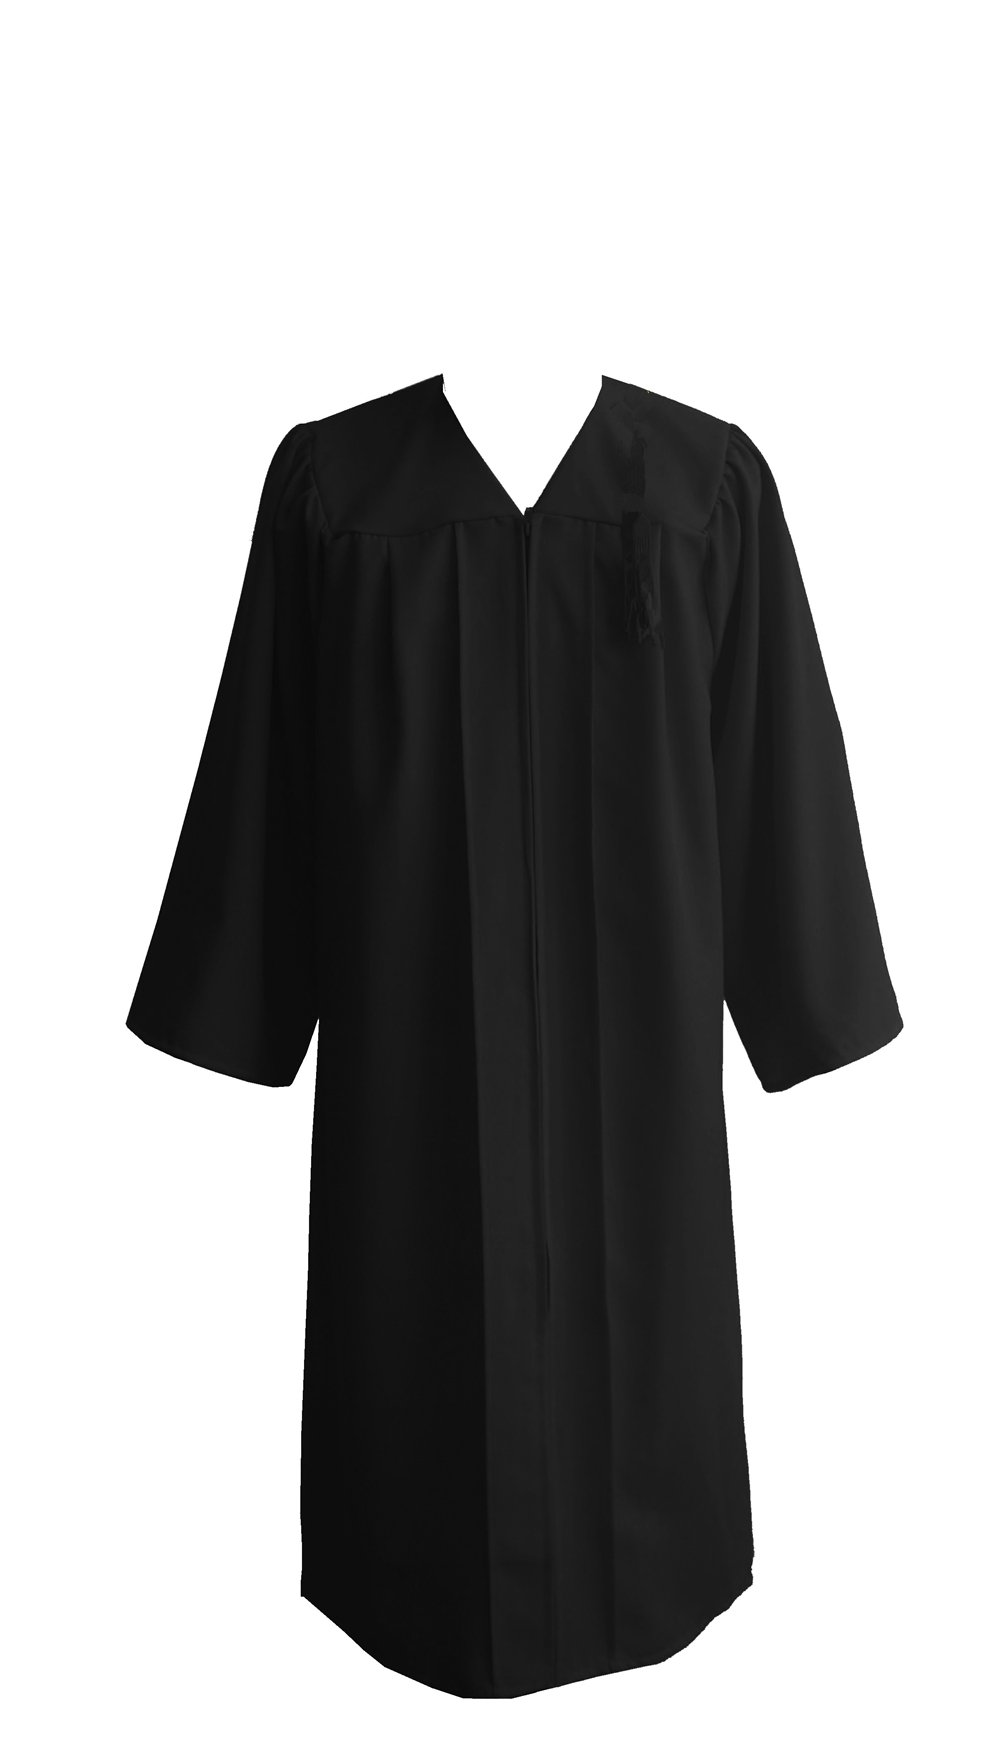 Leishungao Adult Black Choir Robe Matte Finish for Choir Clergy ReligiousWearing Height 5'9''-5'11''FF by Leishungao (Image #3)